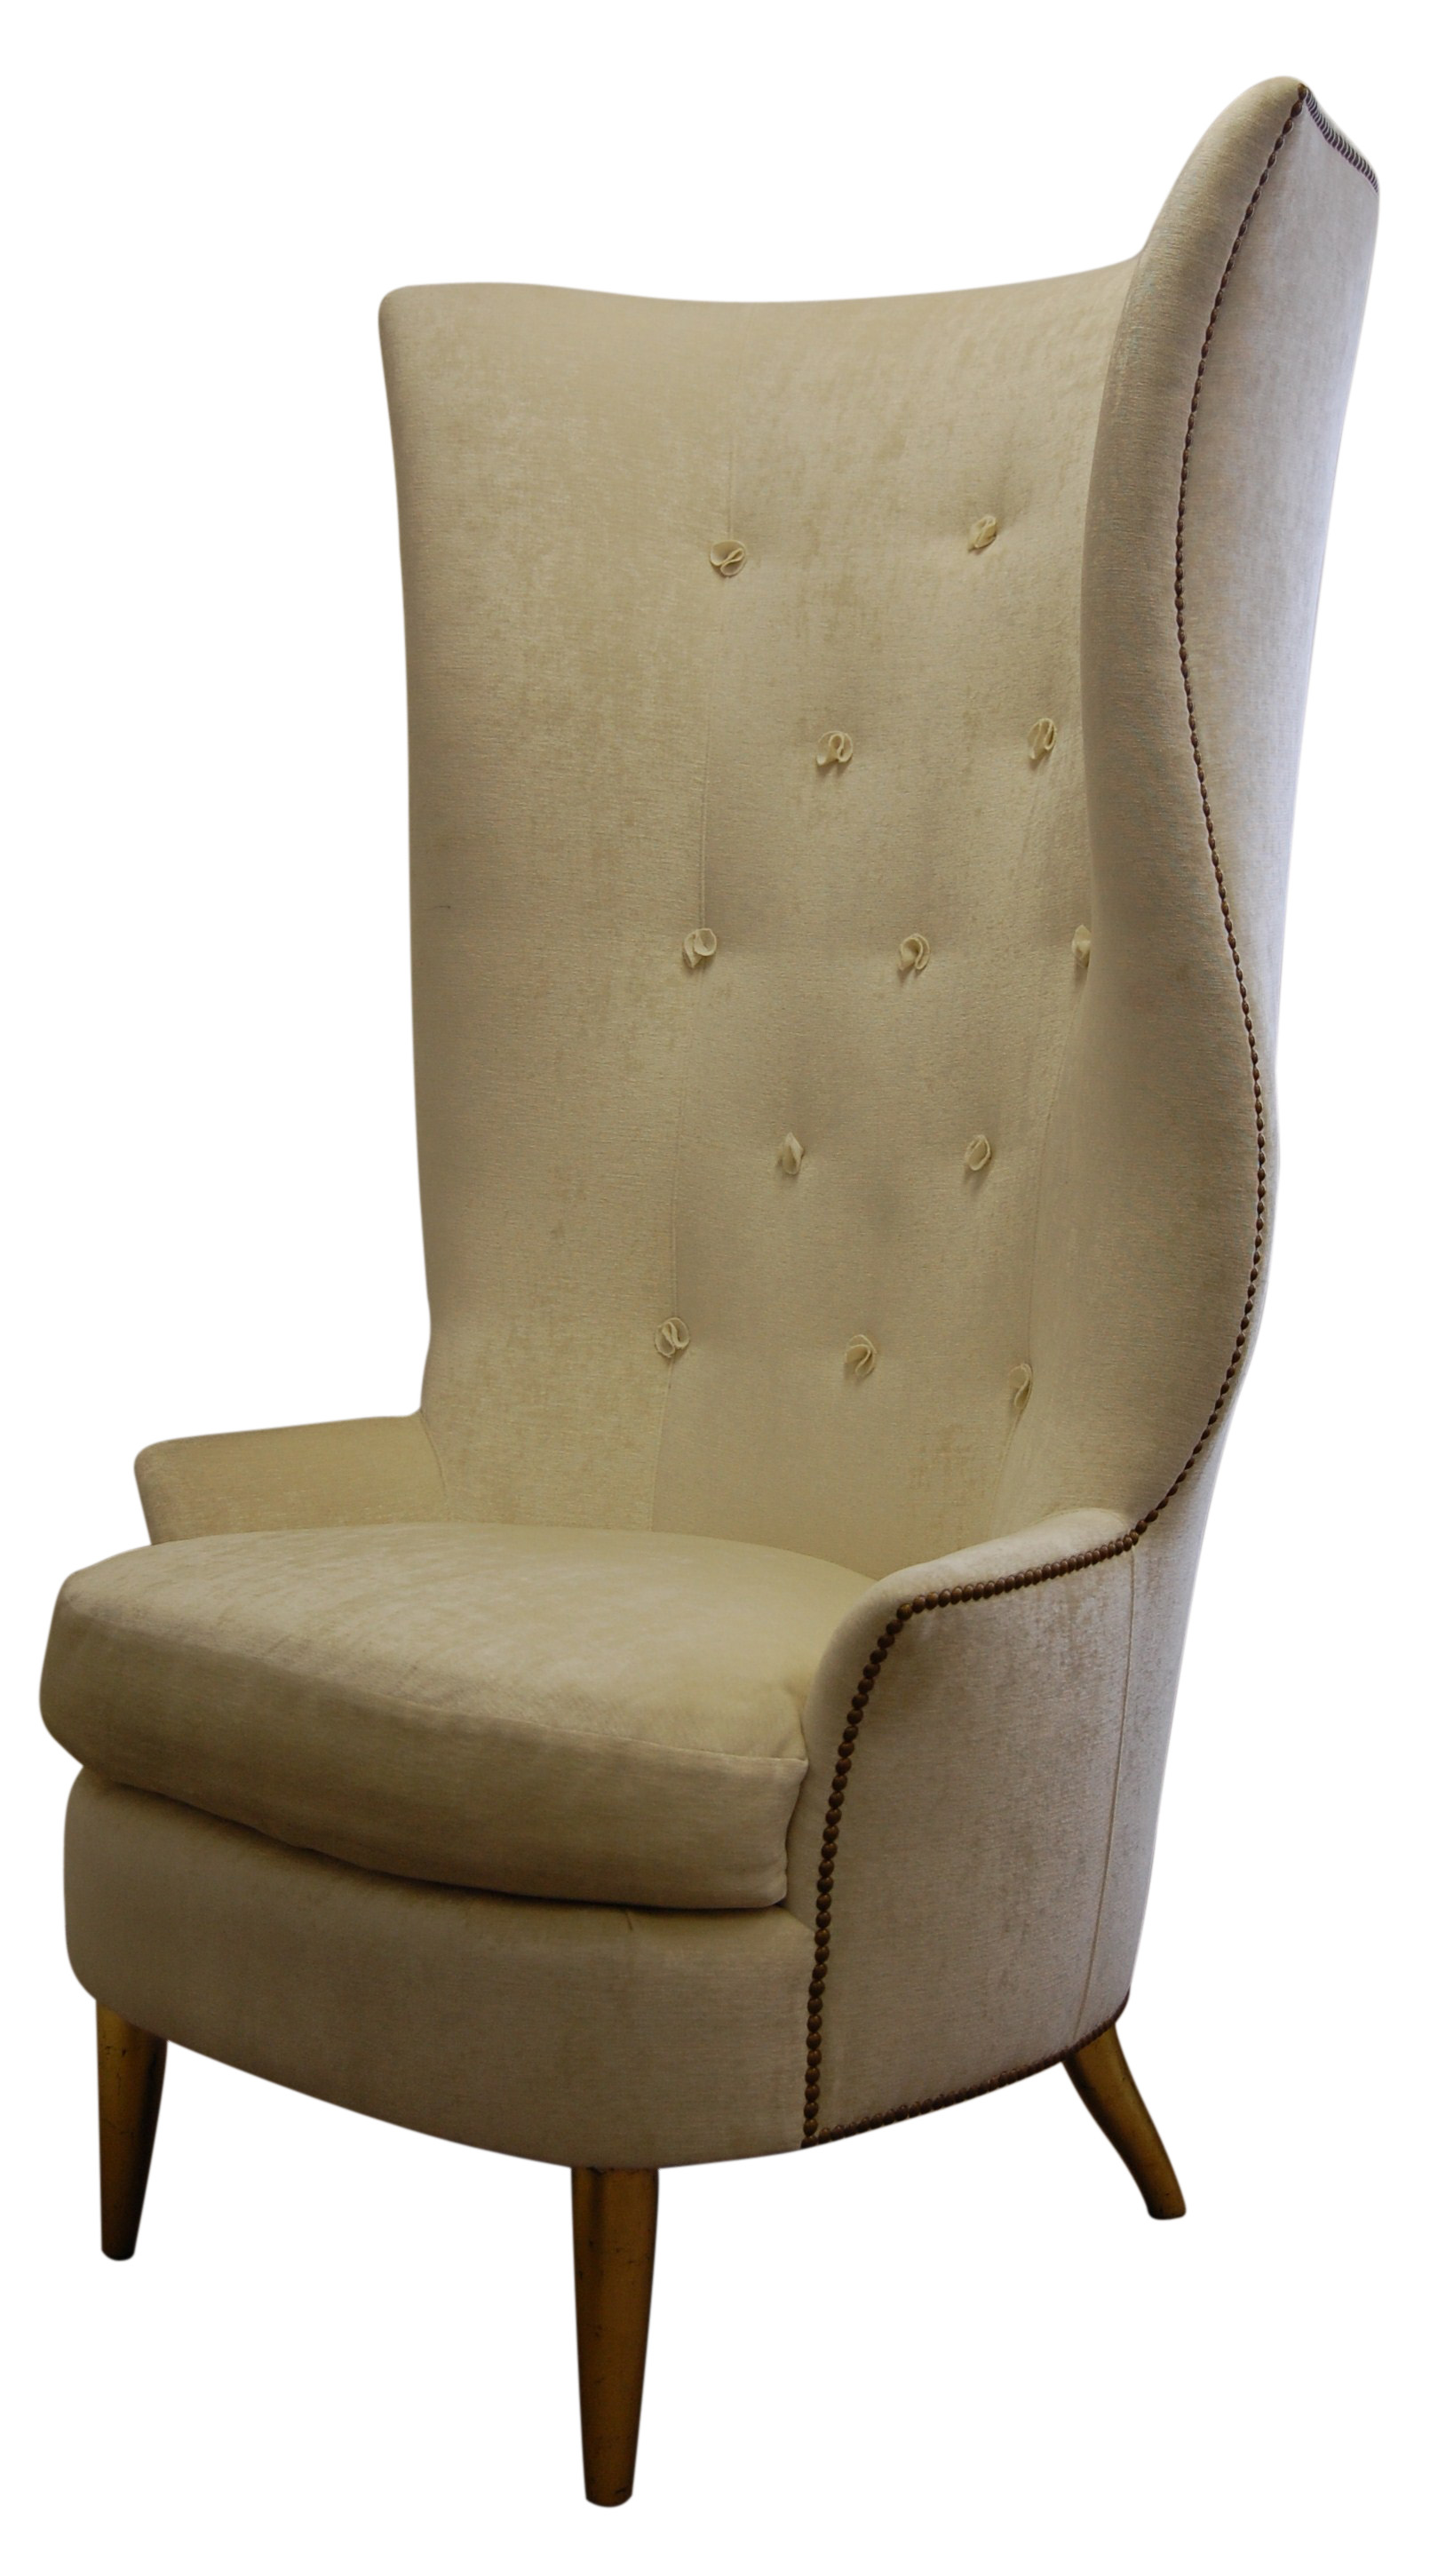 Gudinna Barrel Tall Wing Chair - Traditional Transitional Mid